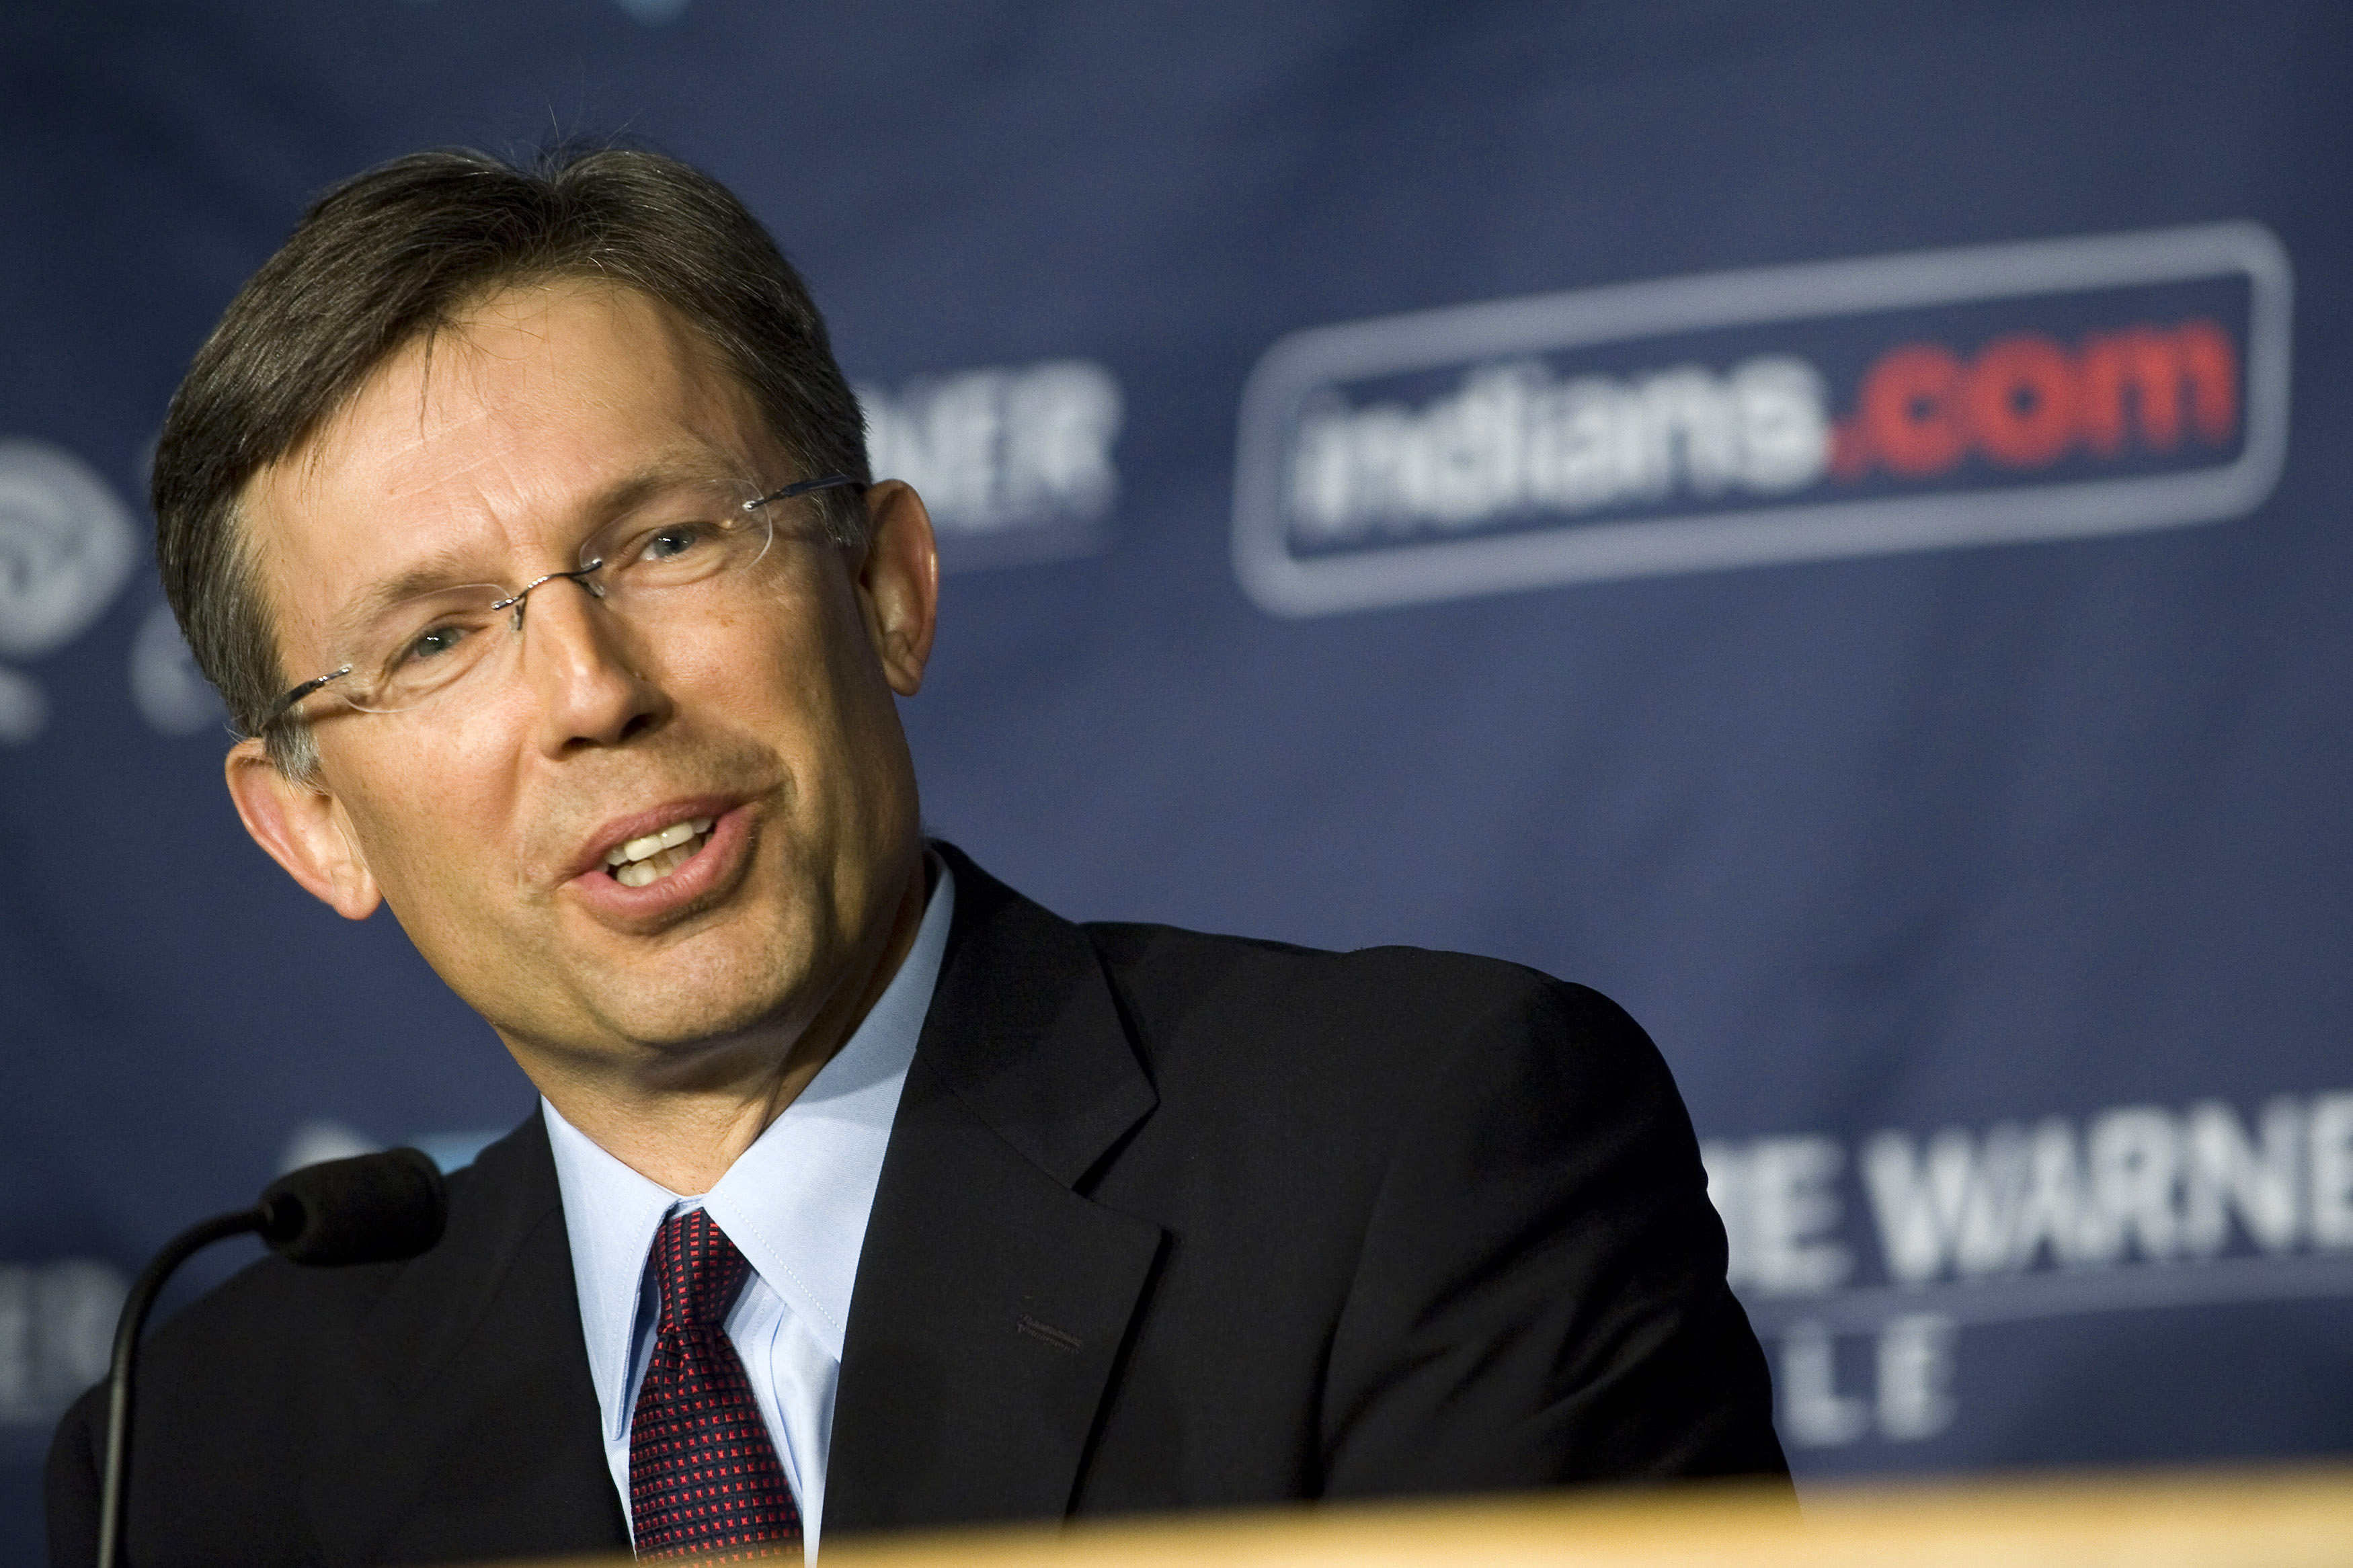 FILE - In this Feb. 18, 2010, file photo, Cleveland Indians' Paul Dolan speaks during a news conference at Progressive Field in Cleveland, Ohio. Indians owner Dolan hired an investment broker several months ago to help him find a minority investor for his